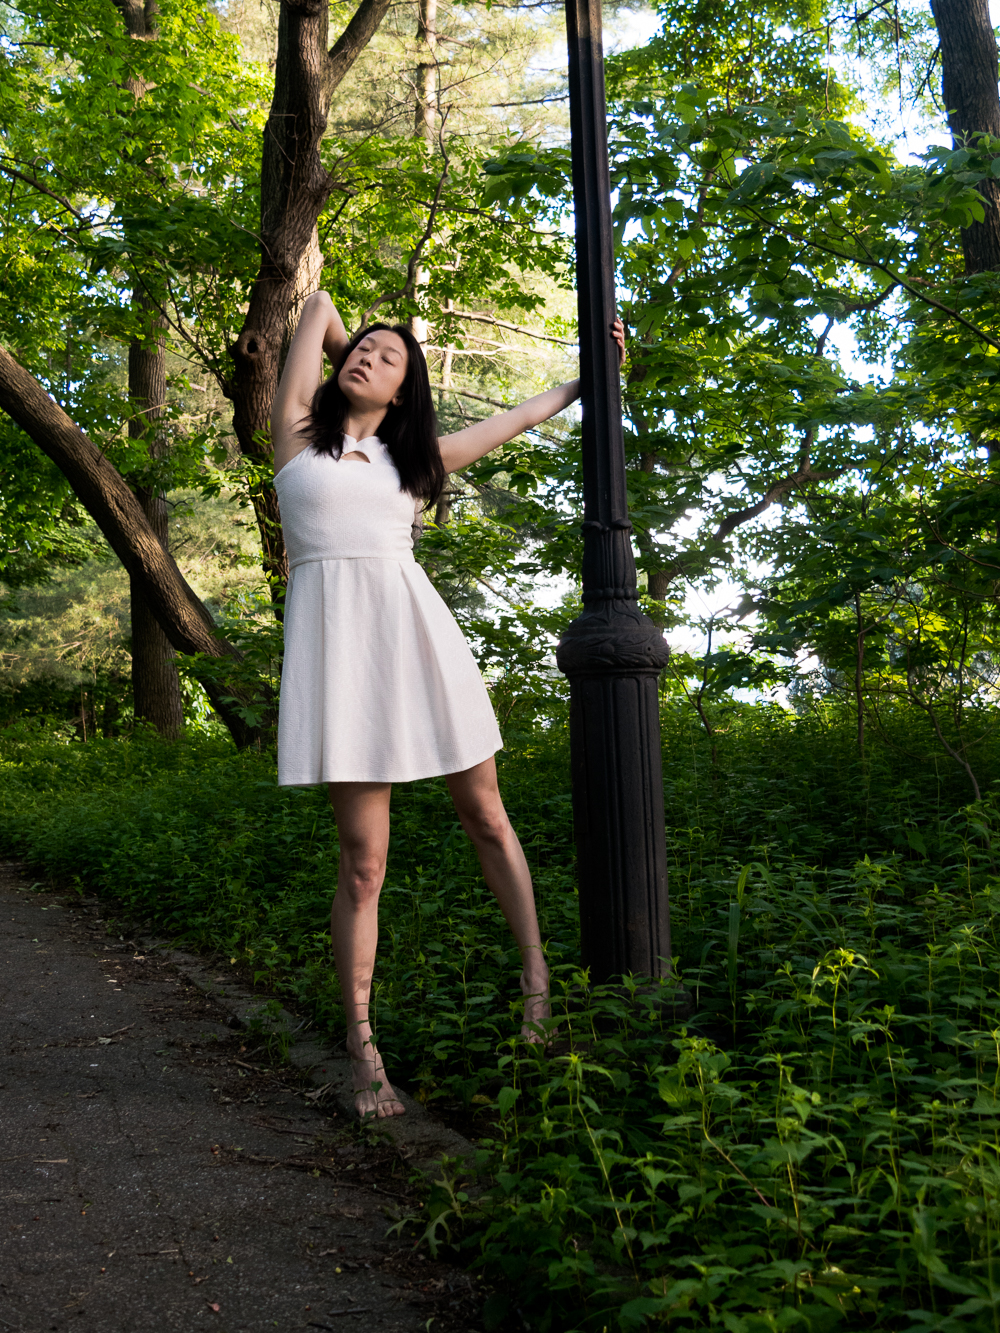 Female east asian style blogger wearing white a-line dress holding on to lamp post in park